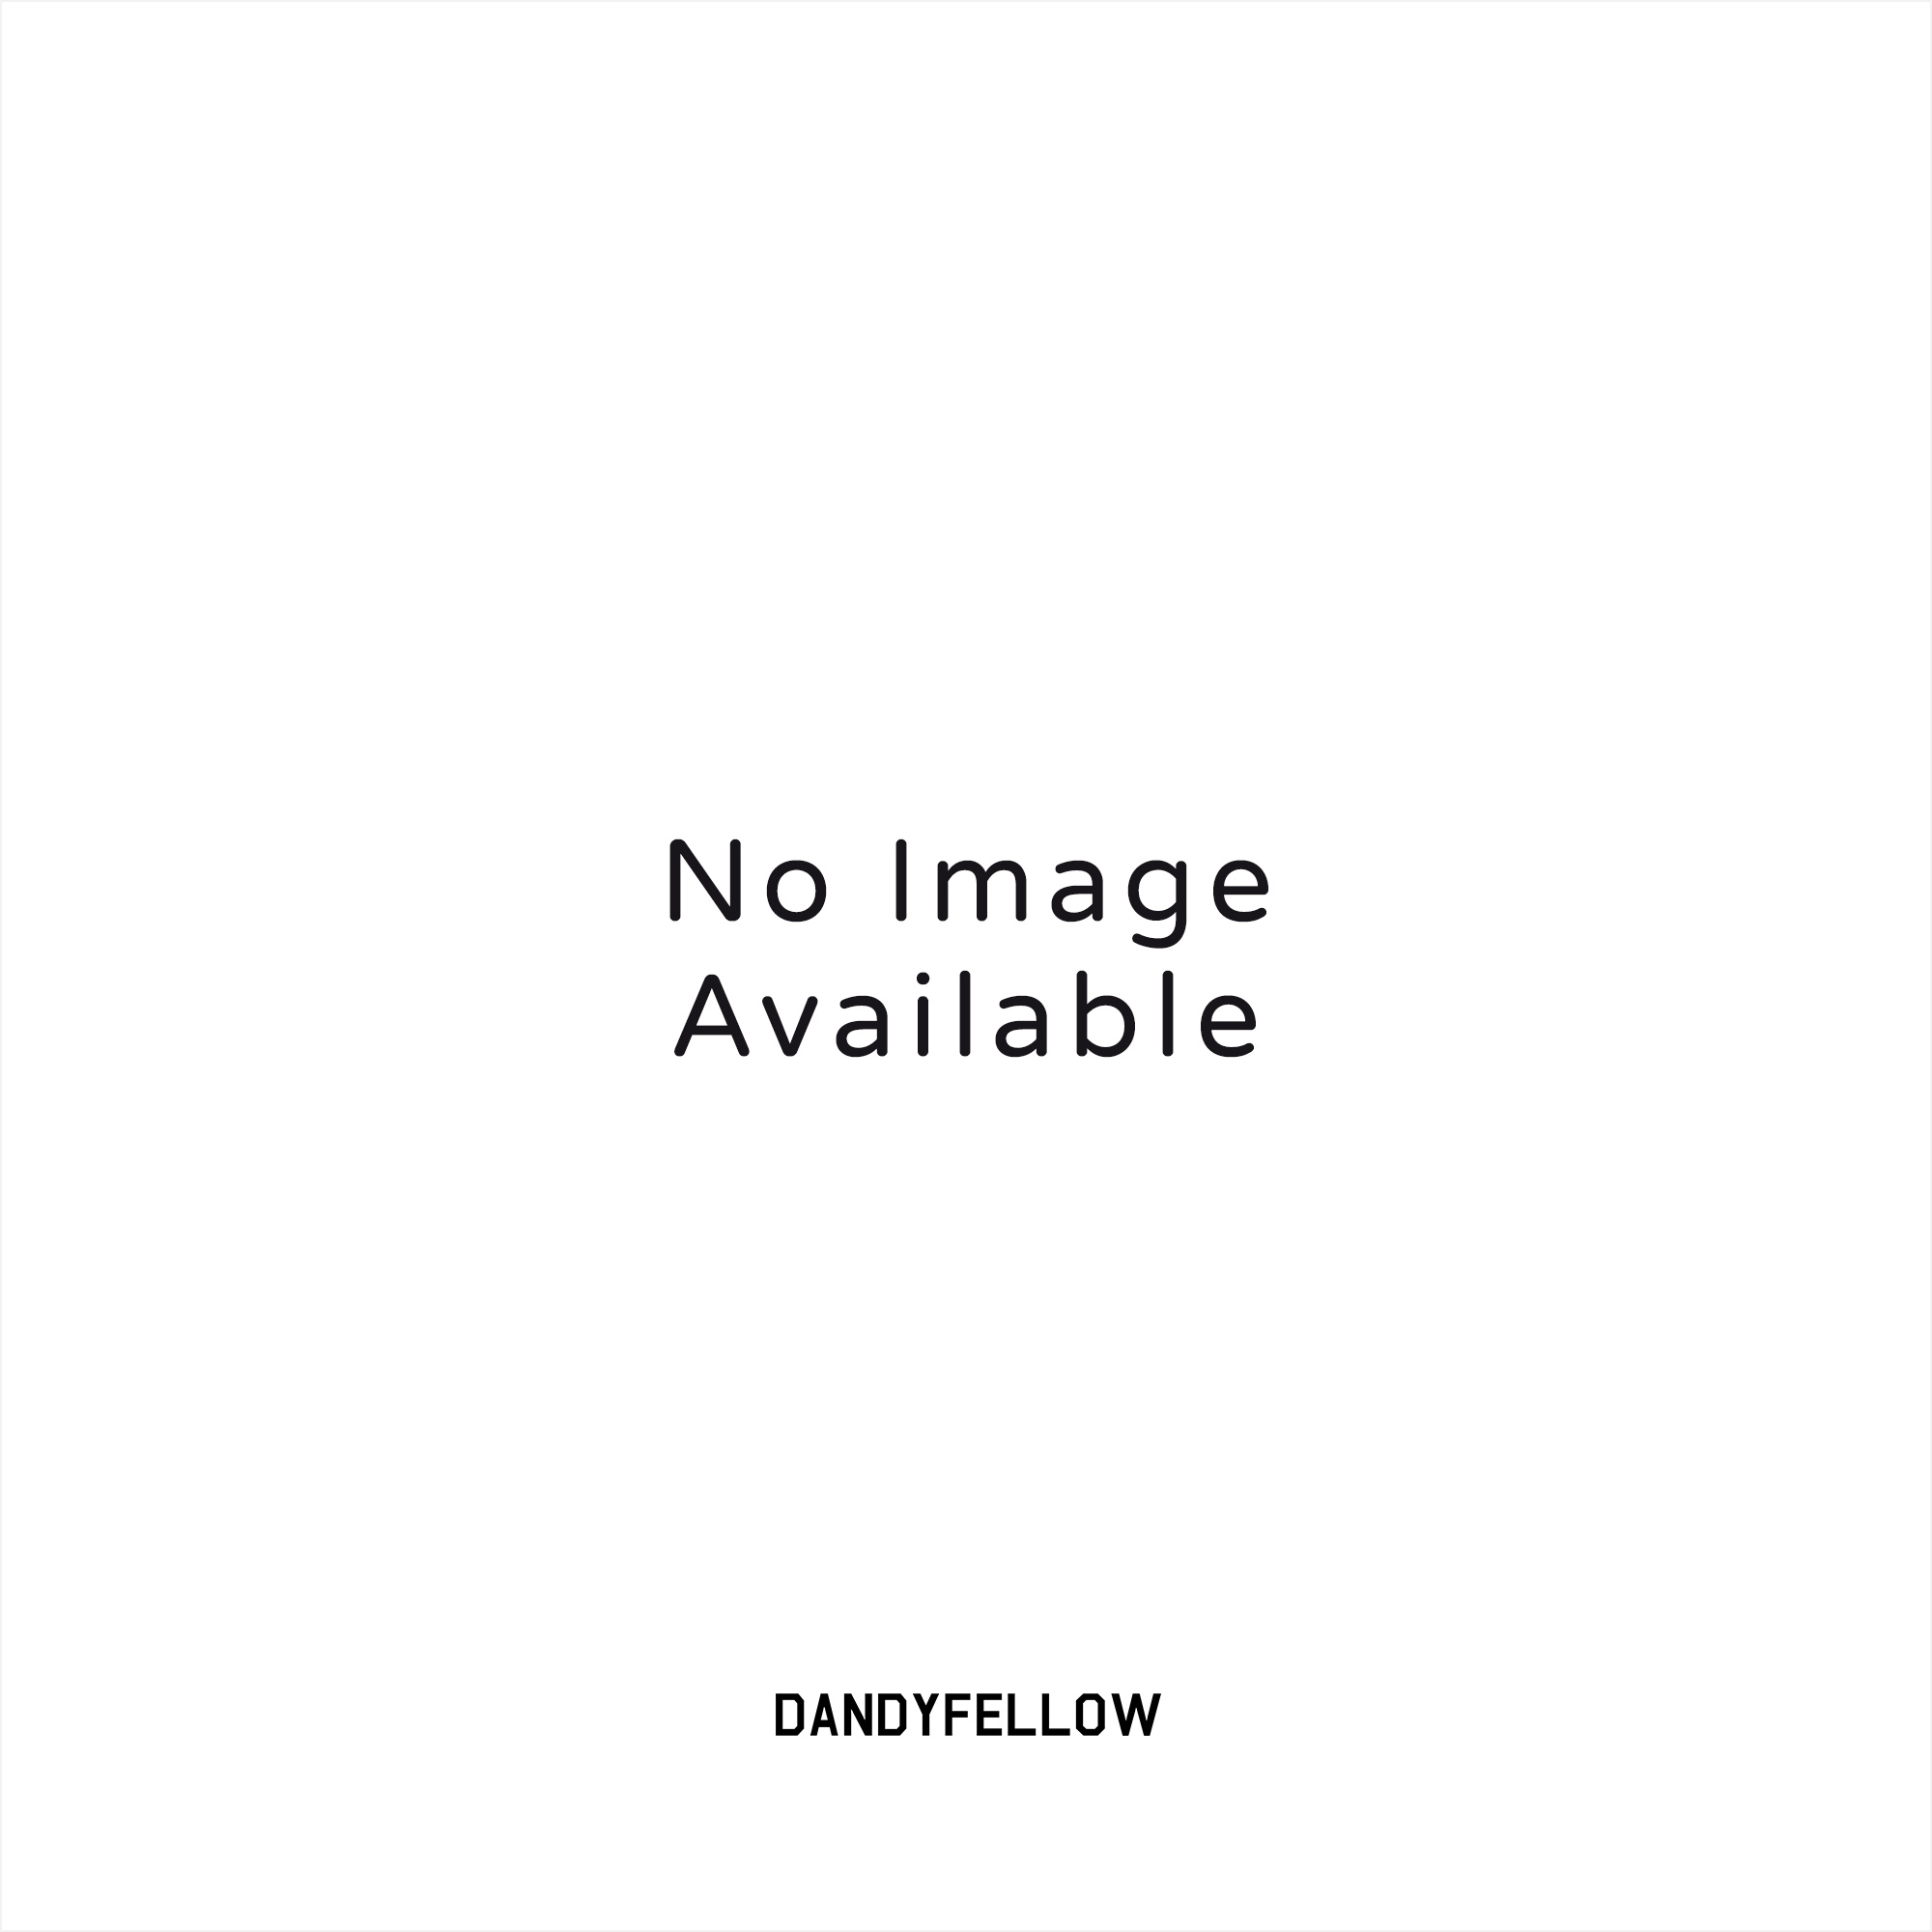 60bfc0d2ab7 Bally Vita Parcours Trainers (White Lamb Leather) at Dandy Fellow